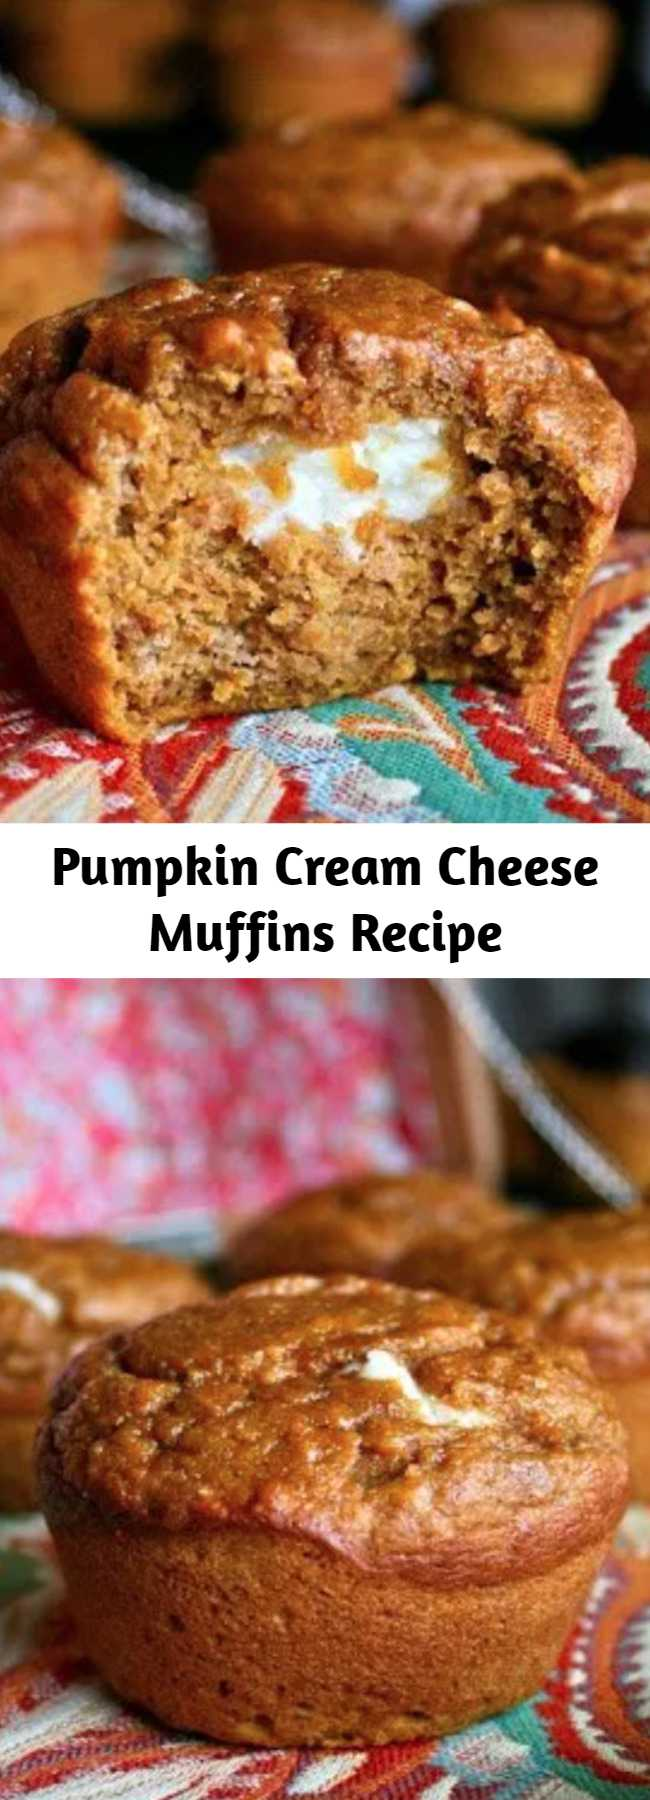 Pumpkin Cream Cheese Muffins Recipe - These Pumpkin Cream Cheese Muffins are a perfect Starbucks knock off and they are sure to satisfy all your pumpkin dreams. It's amazingly light, moist, and flavorful so I will definitely be keeping this recipe for my go to pumpkin bread/muffin. In my opinion, these are best served slightly warmed and with a cup of hot coffee, which actually sounds pretty great right now. 🙂 Enjoy!